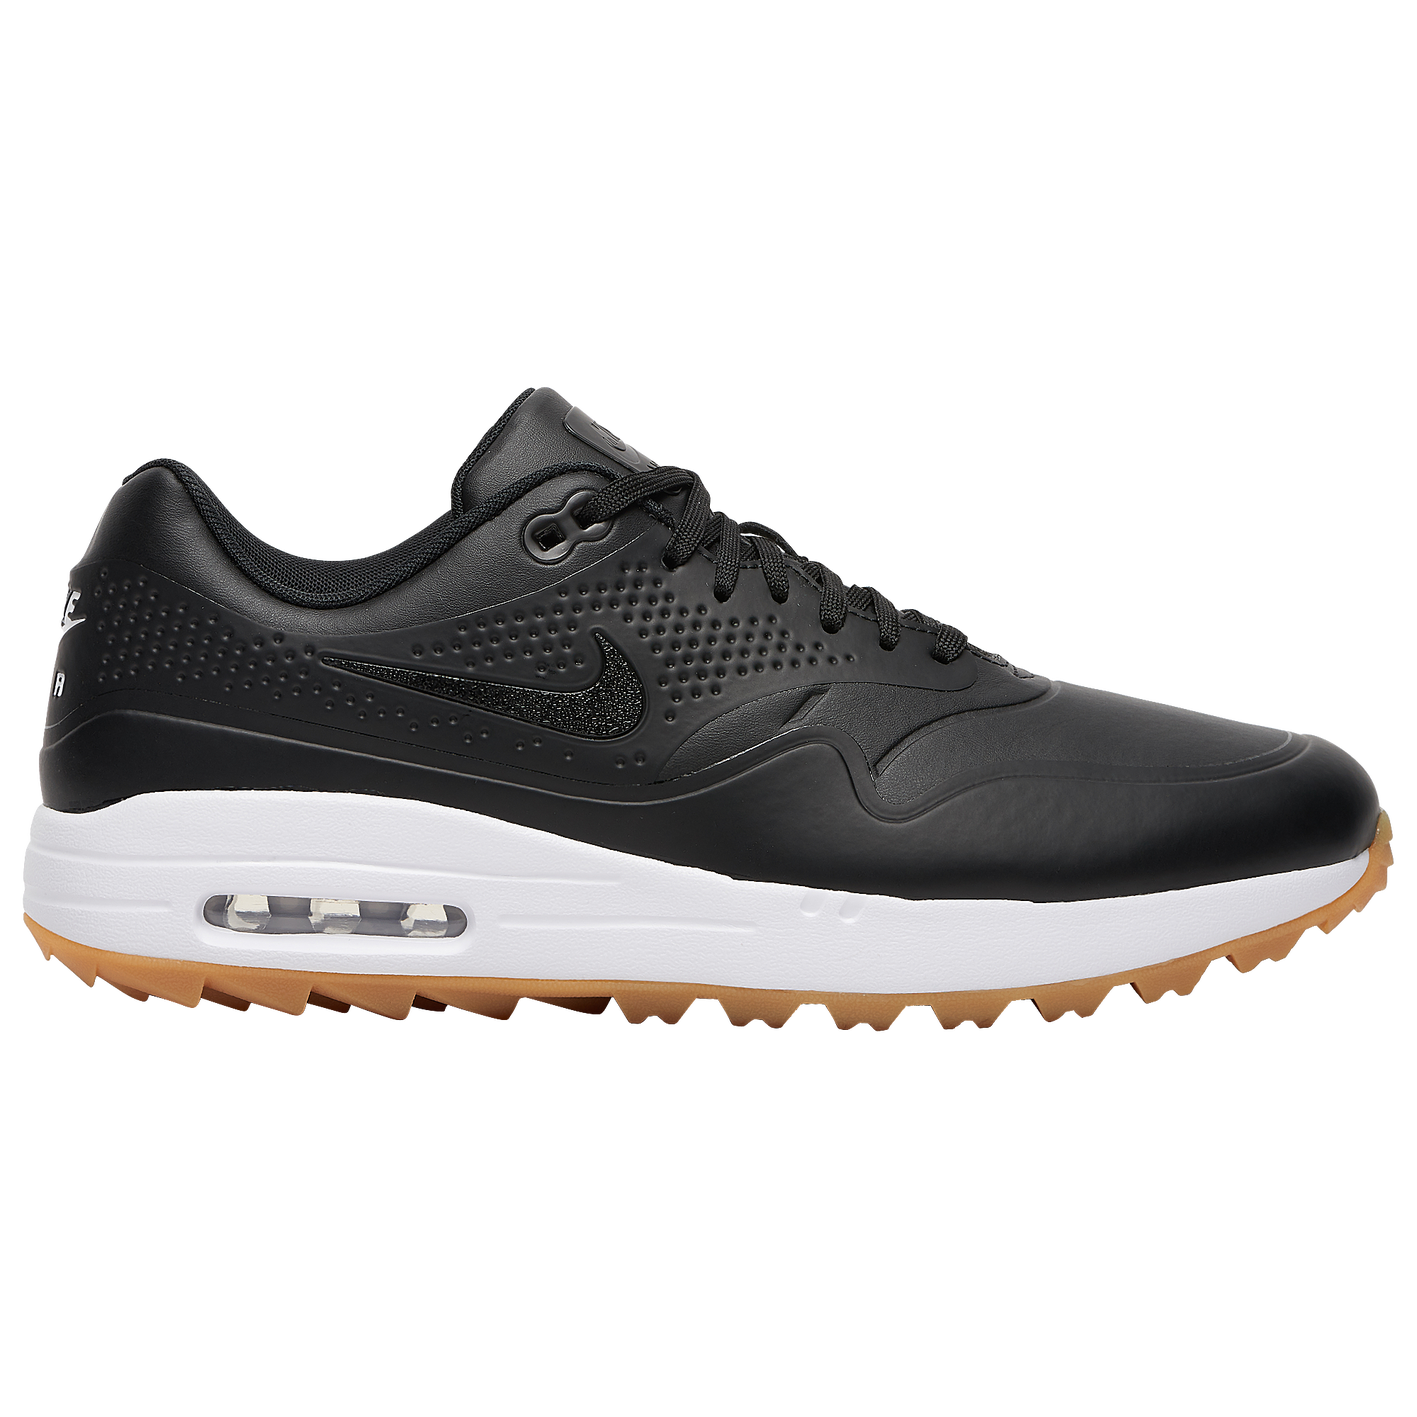 online store 04517 fbf98 Nike Air Max 1 G Golf Shoes - Men s